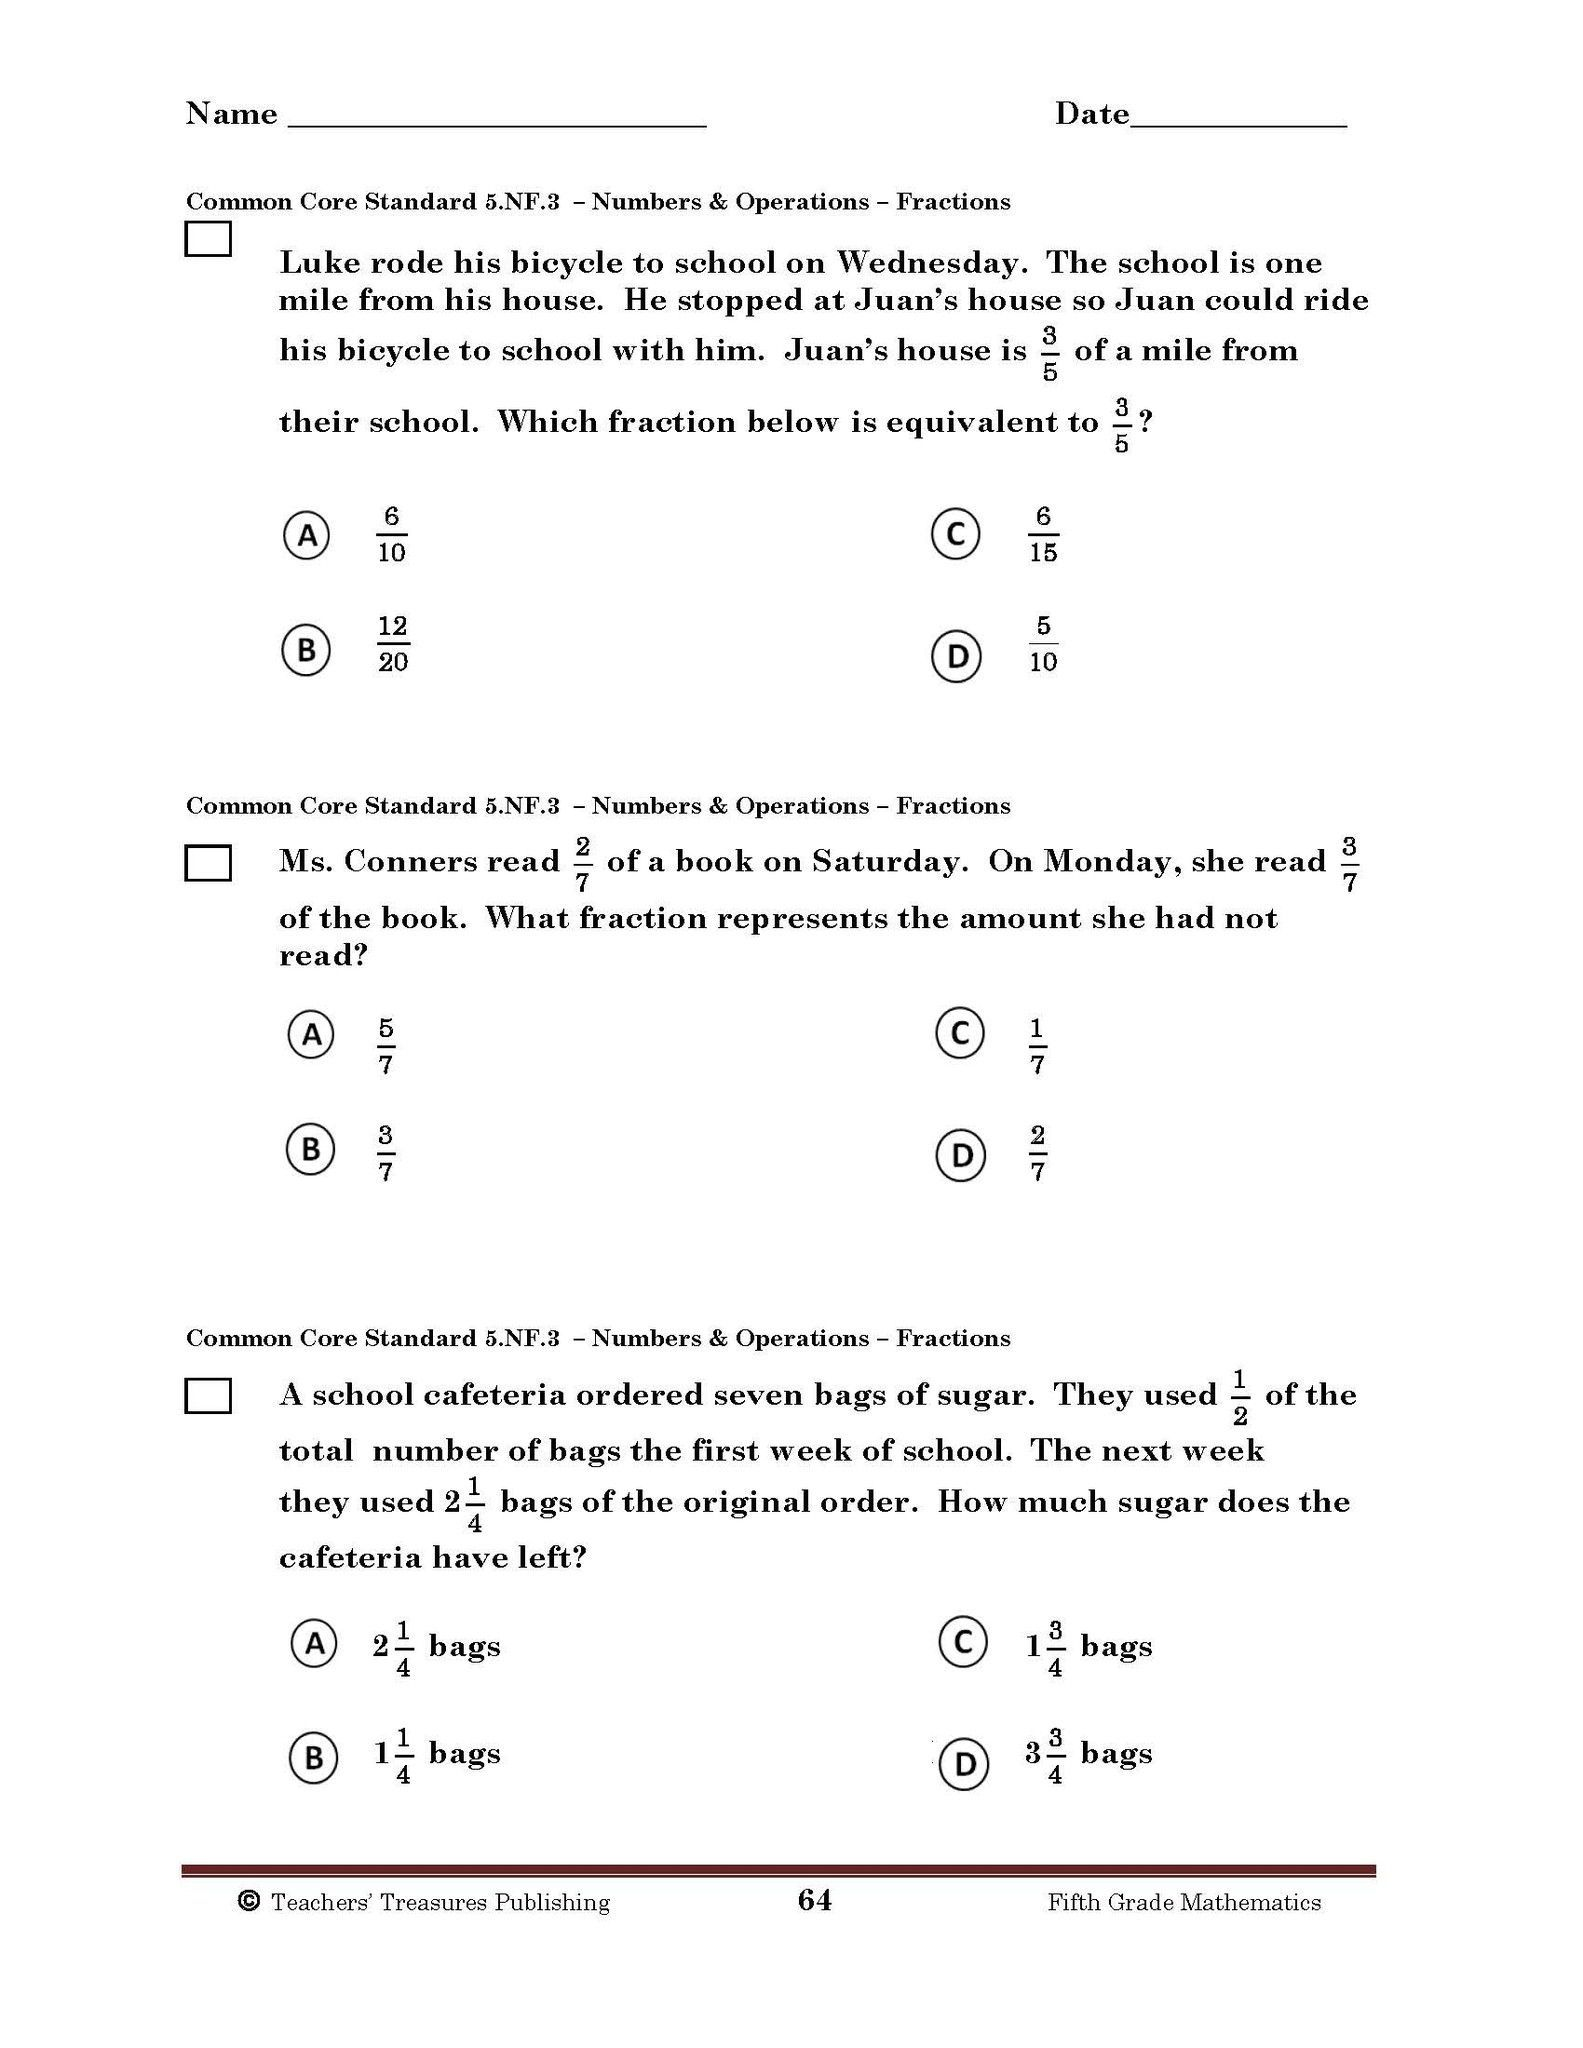 5th Grade Tennessee Common Core Math | math worksheets | Pinterest ...